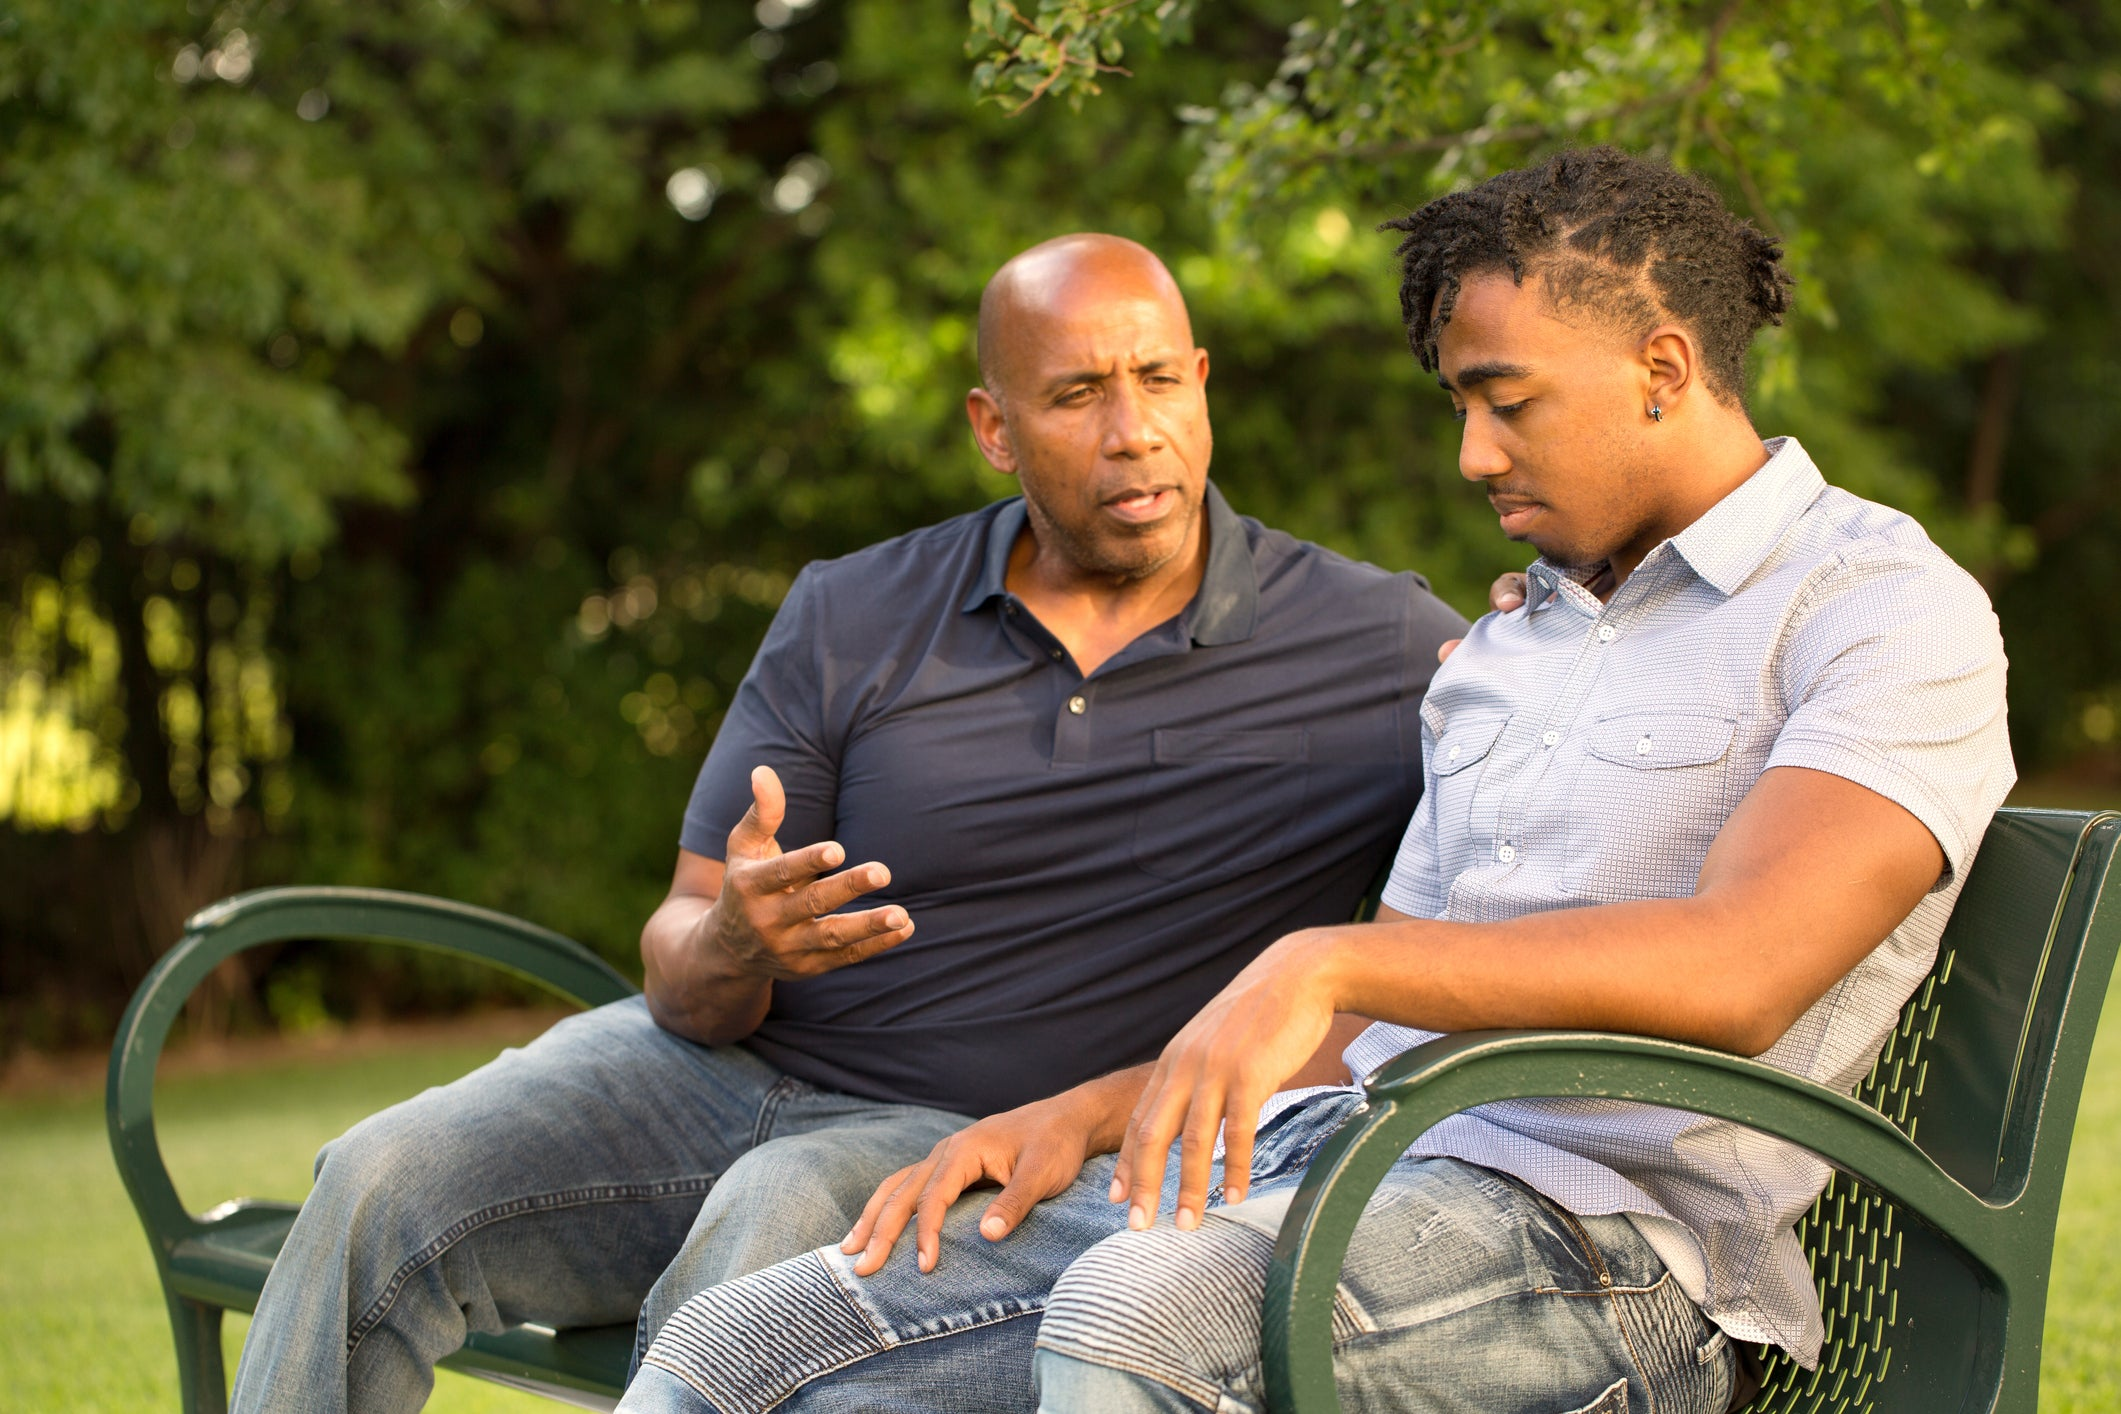 Are Your Kids Ruining Your Prospects for Retirement? | The Motley Fool